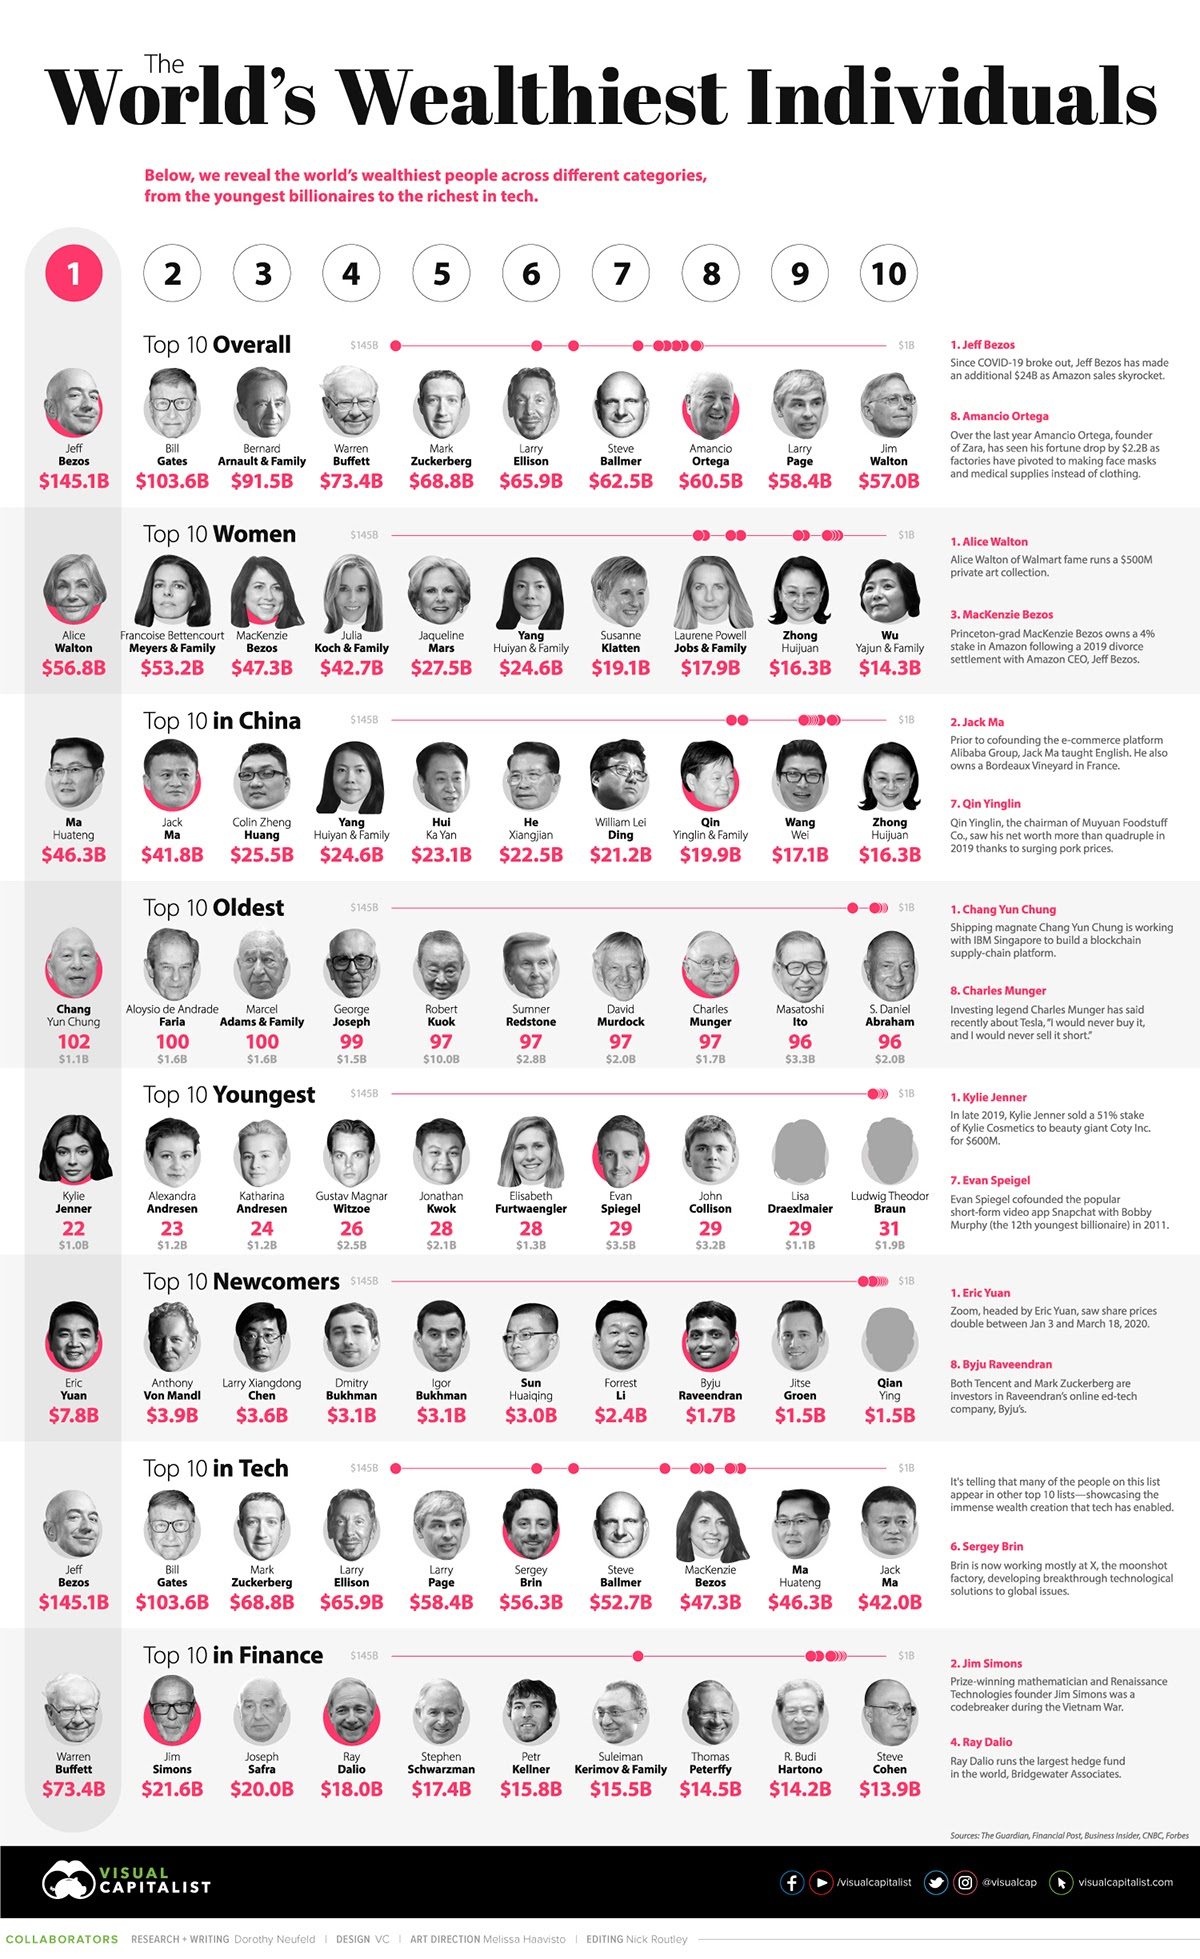 The Worlds Wealthiest Individuals #infographic